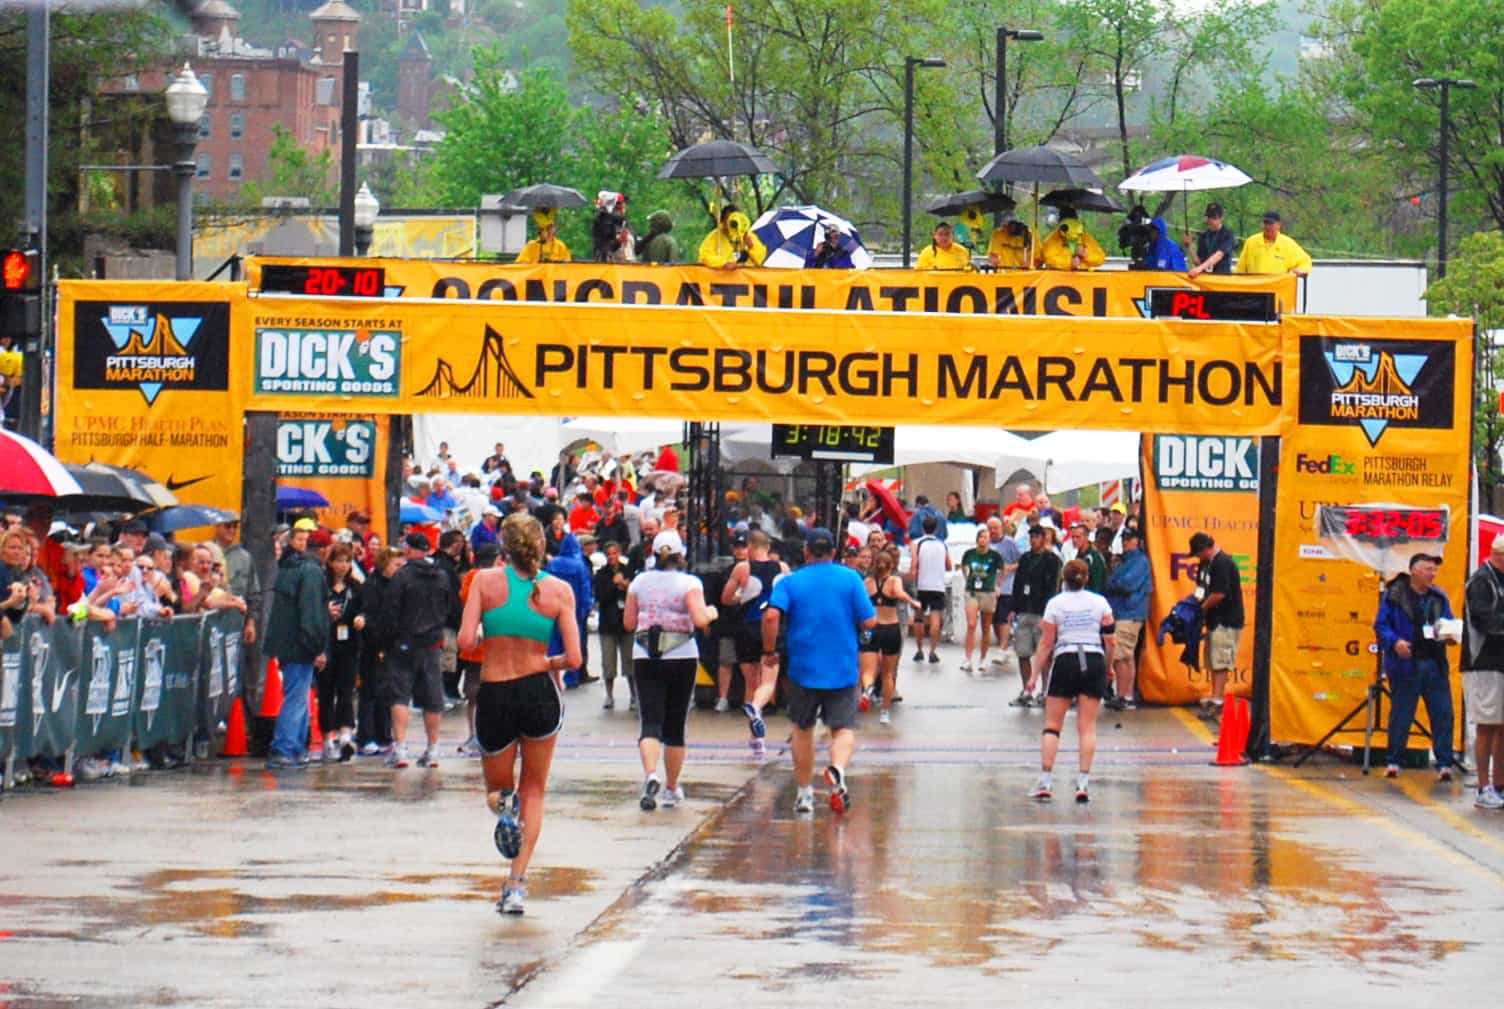 Pittsburgh Marathon Finish Line 2010 I Run, You Donate, Light of Life Benefits